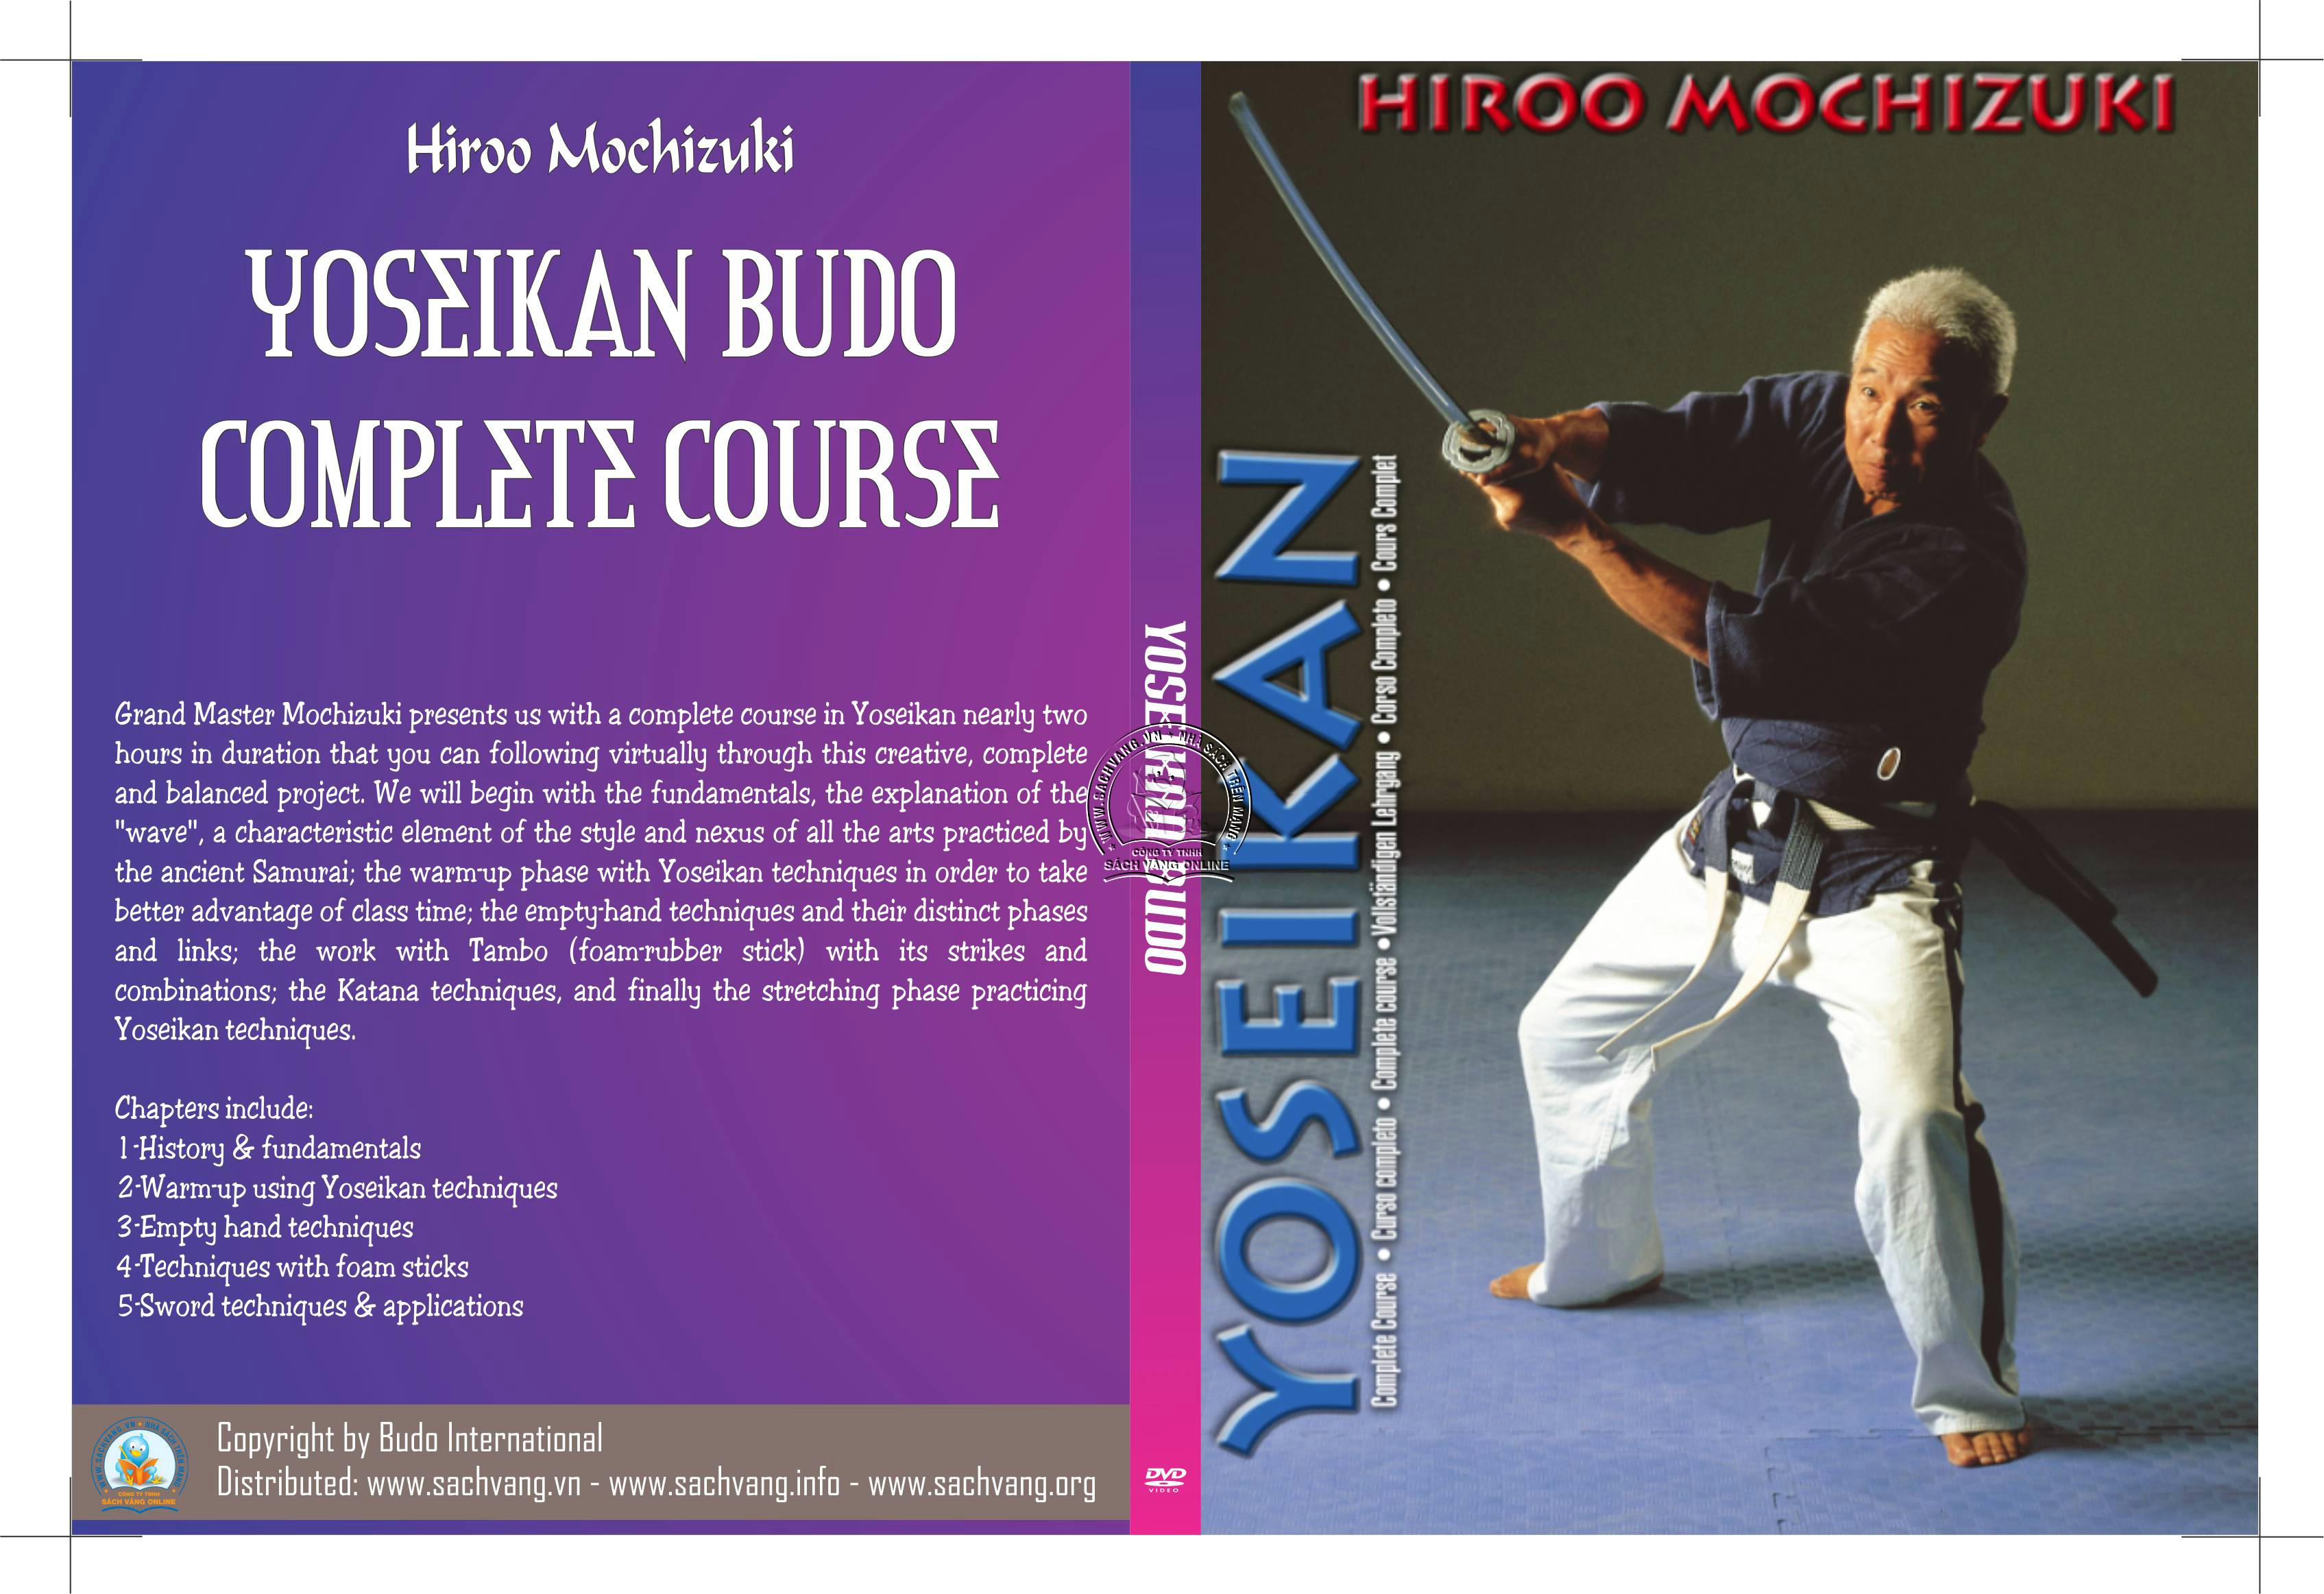 Yoseikan Budo Complete Course with Hiroo Mochizuki cover